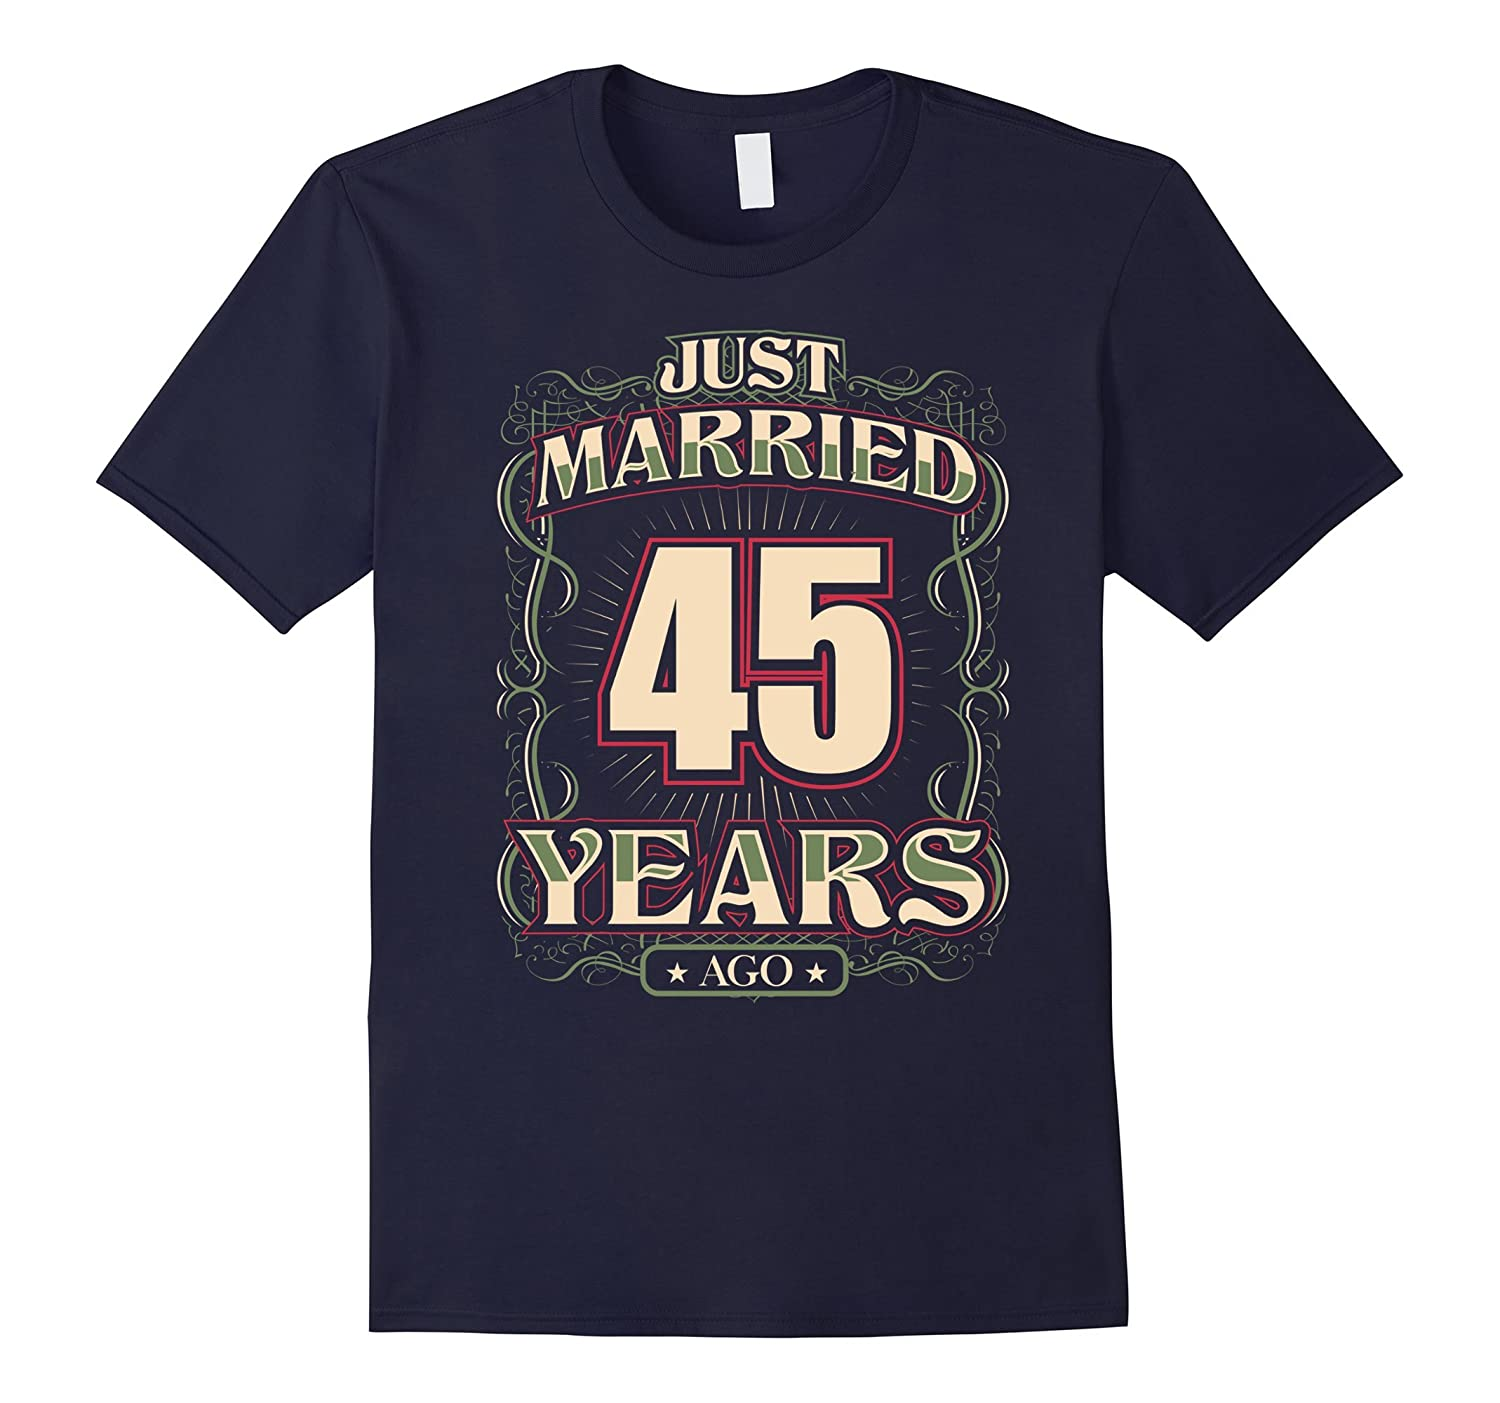 45th Wedding Anniversary Shirt Just Married 45 Years Ago-4LVS